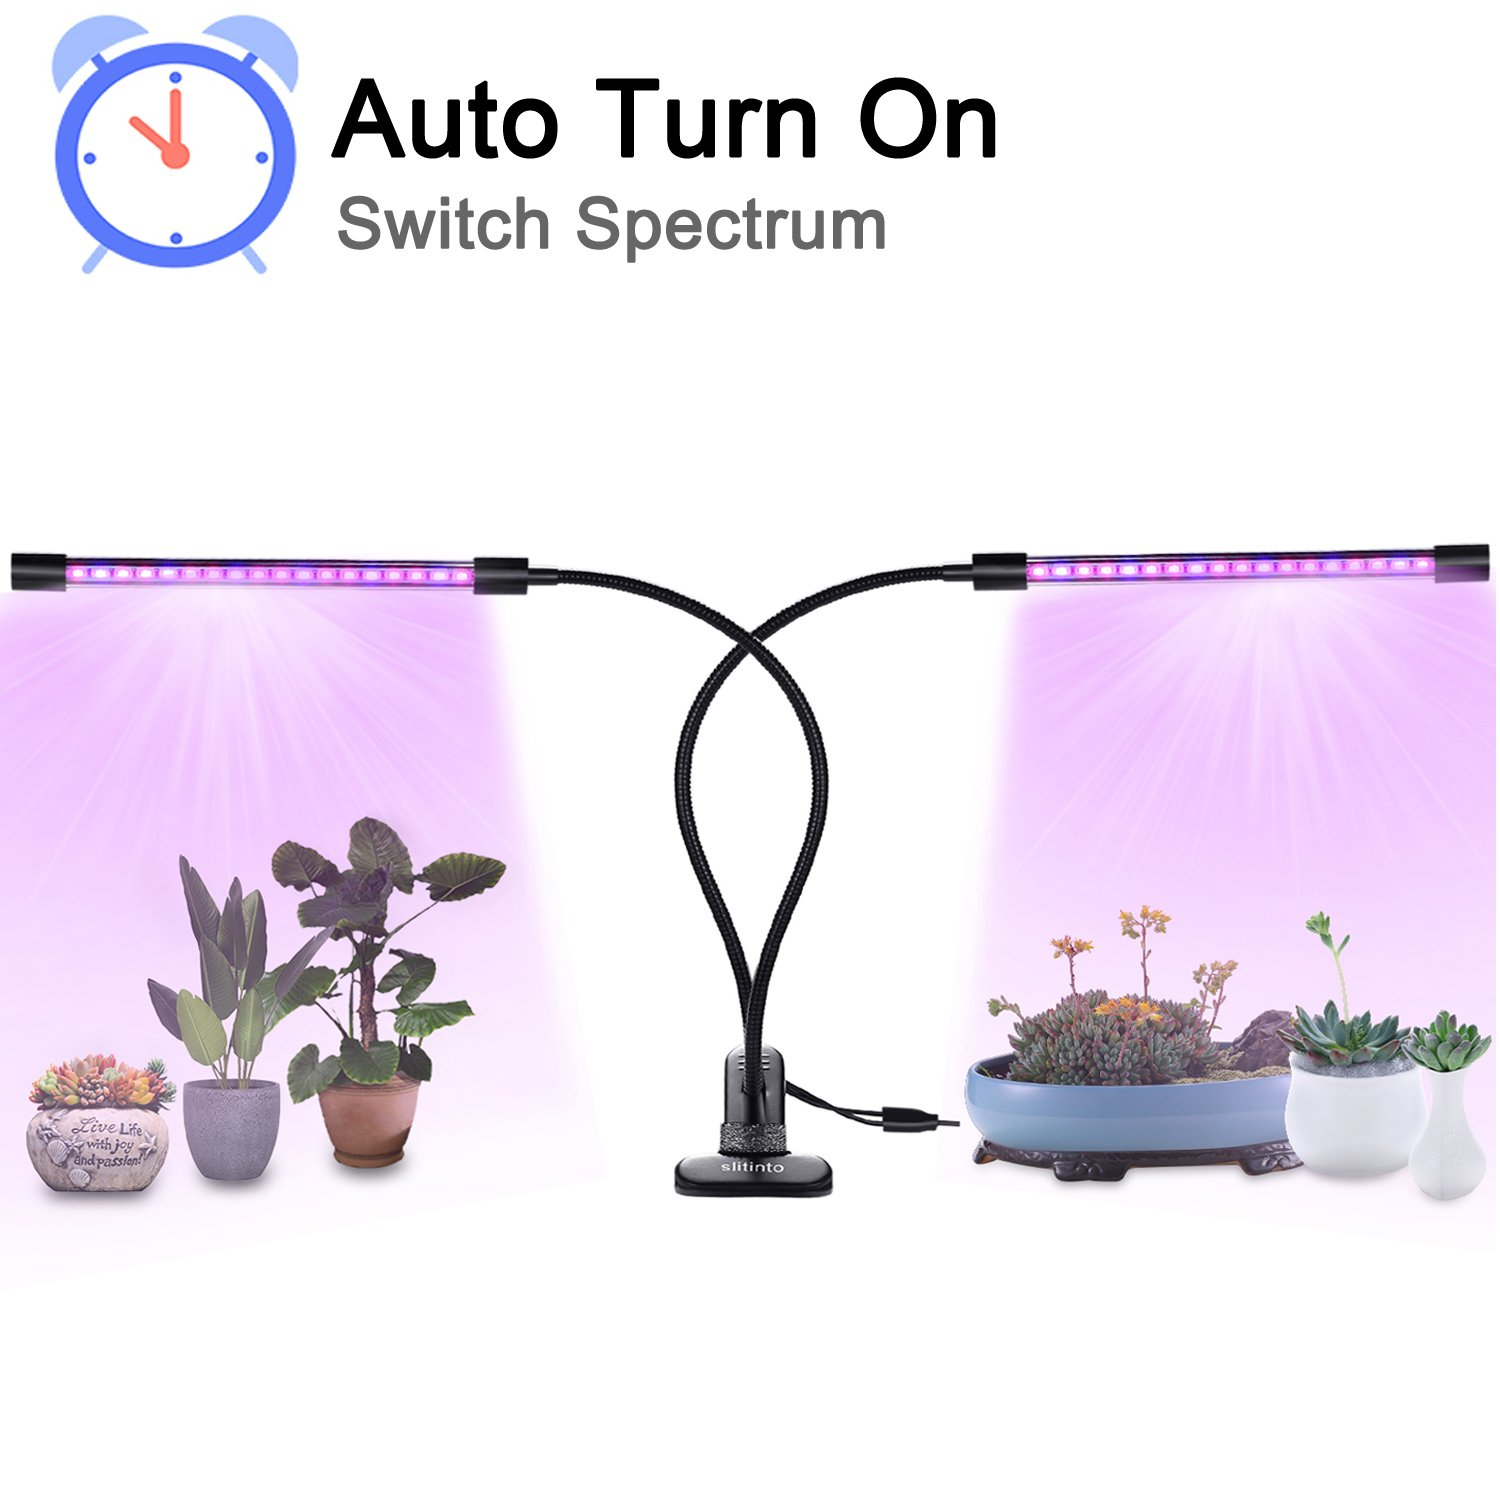 18W Plant Grow Light with Auto Turn On Function, slitinto Dual Head 36 LED 5 Dimmable Levels Grow Lamp Bulbs, 3/9/12H Timer, Spectrum Switching, Adjustable Gooseneck for Indoor Plants [2018 Upgraded]